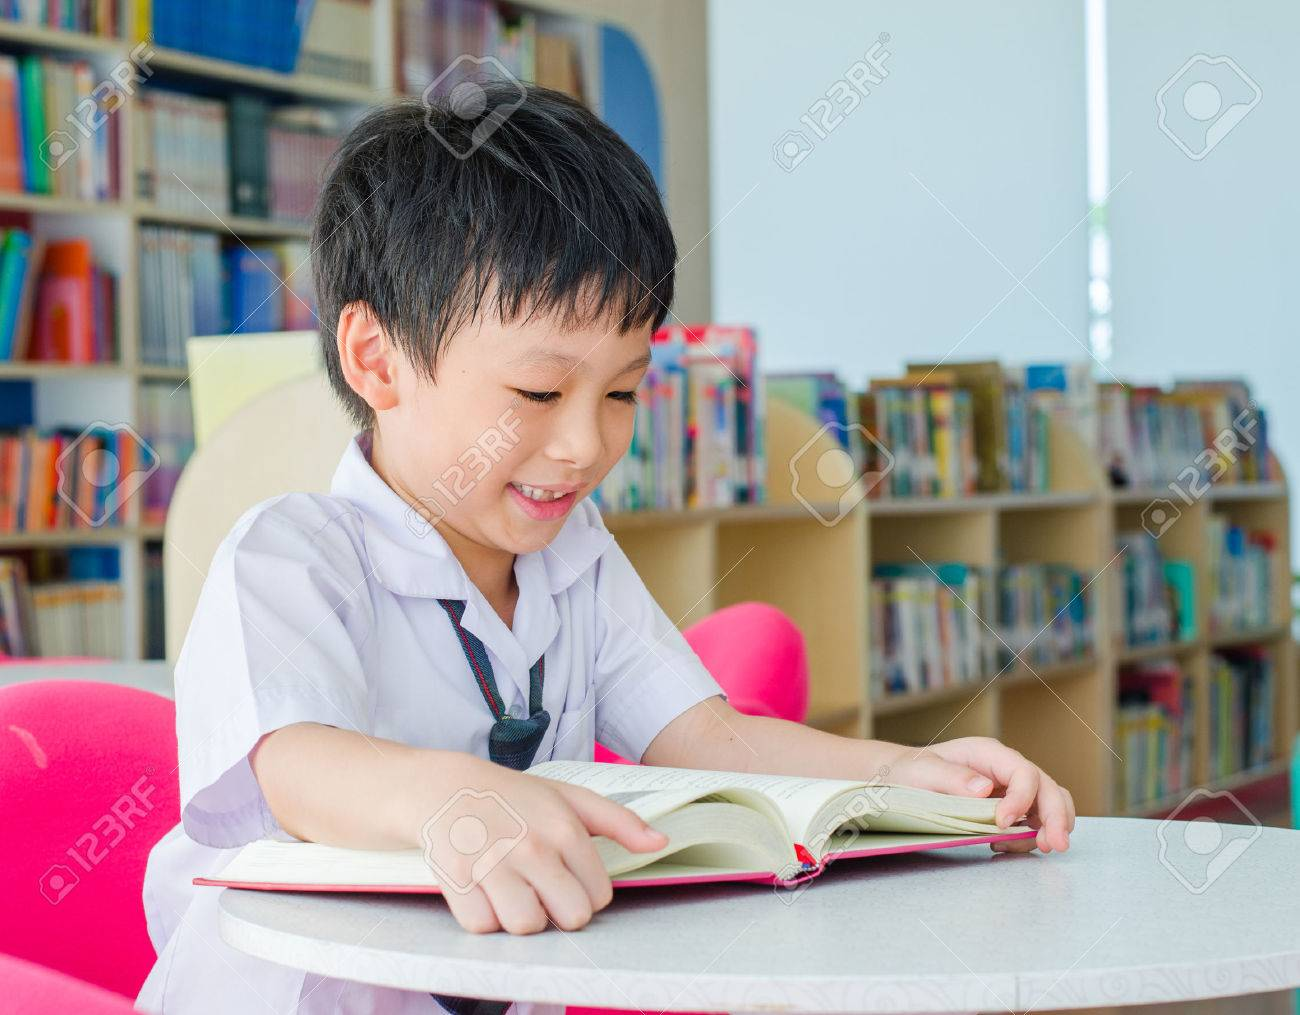 Asian schoolboy reading book in school library Stock Photo - 35107327